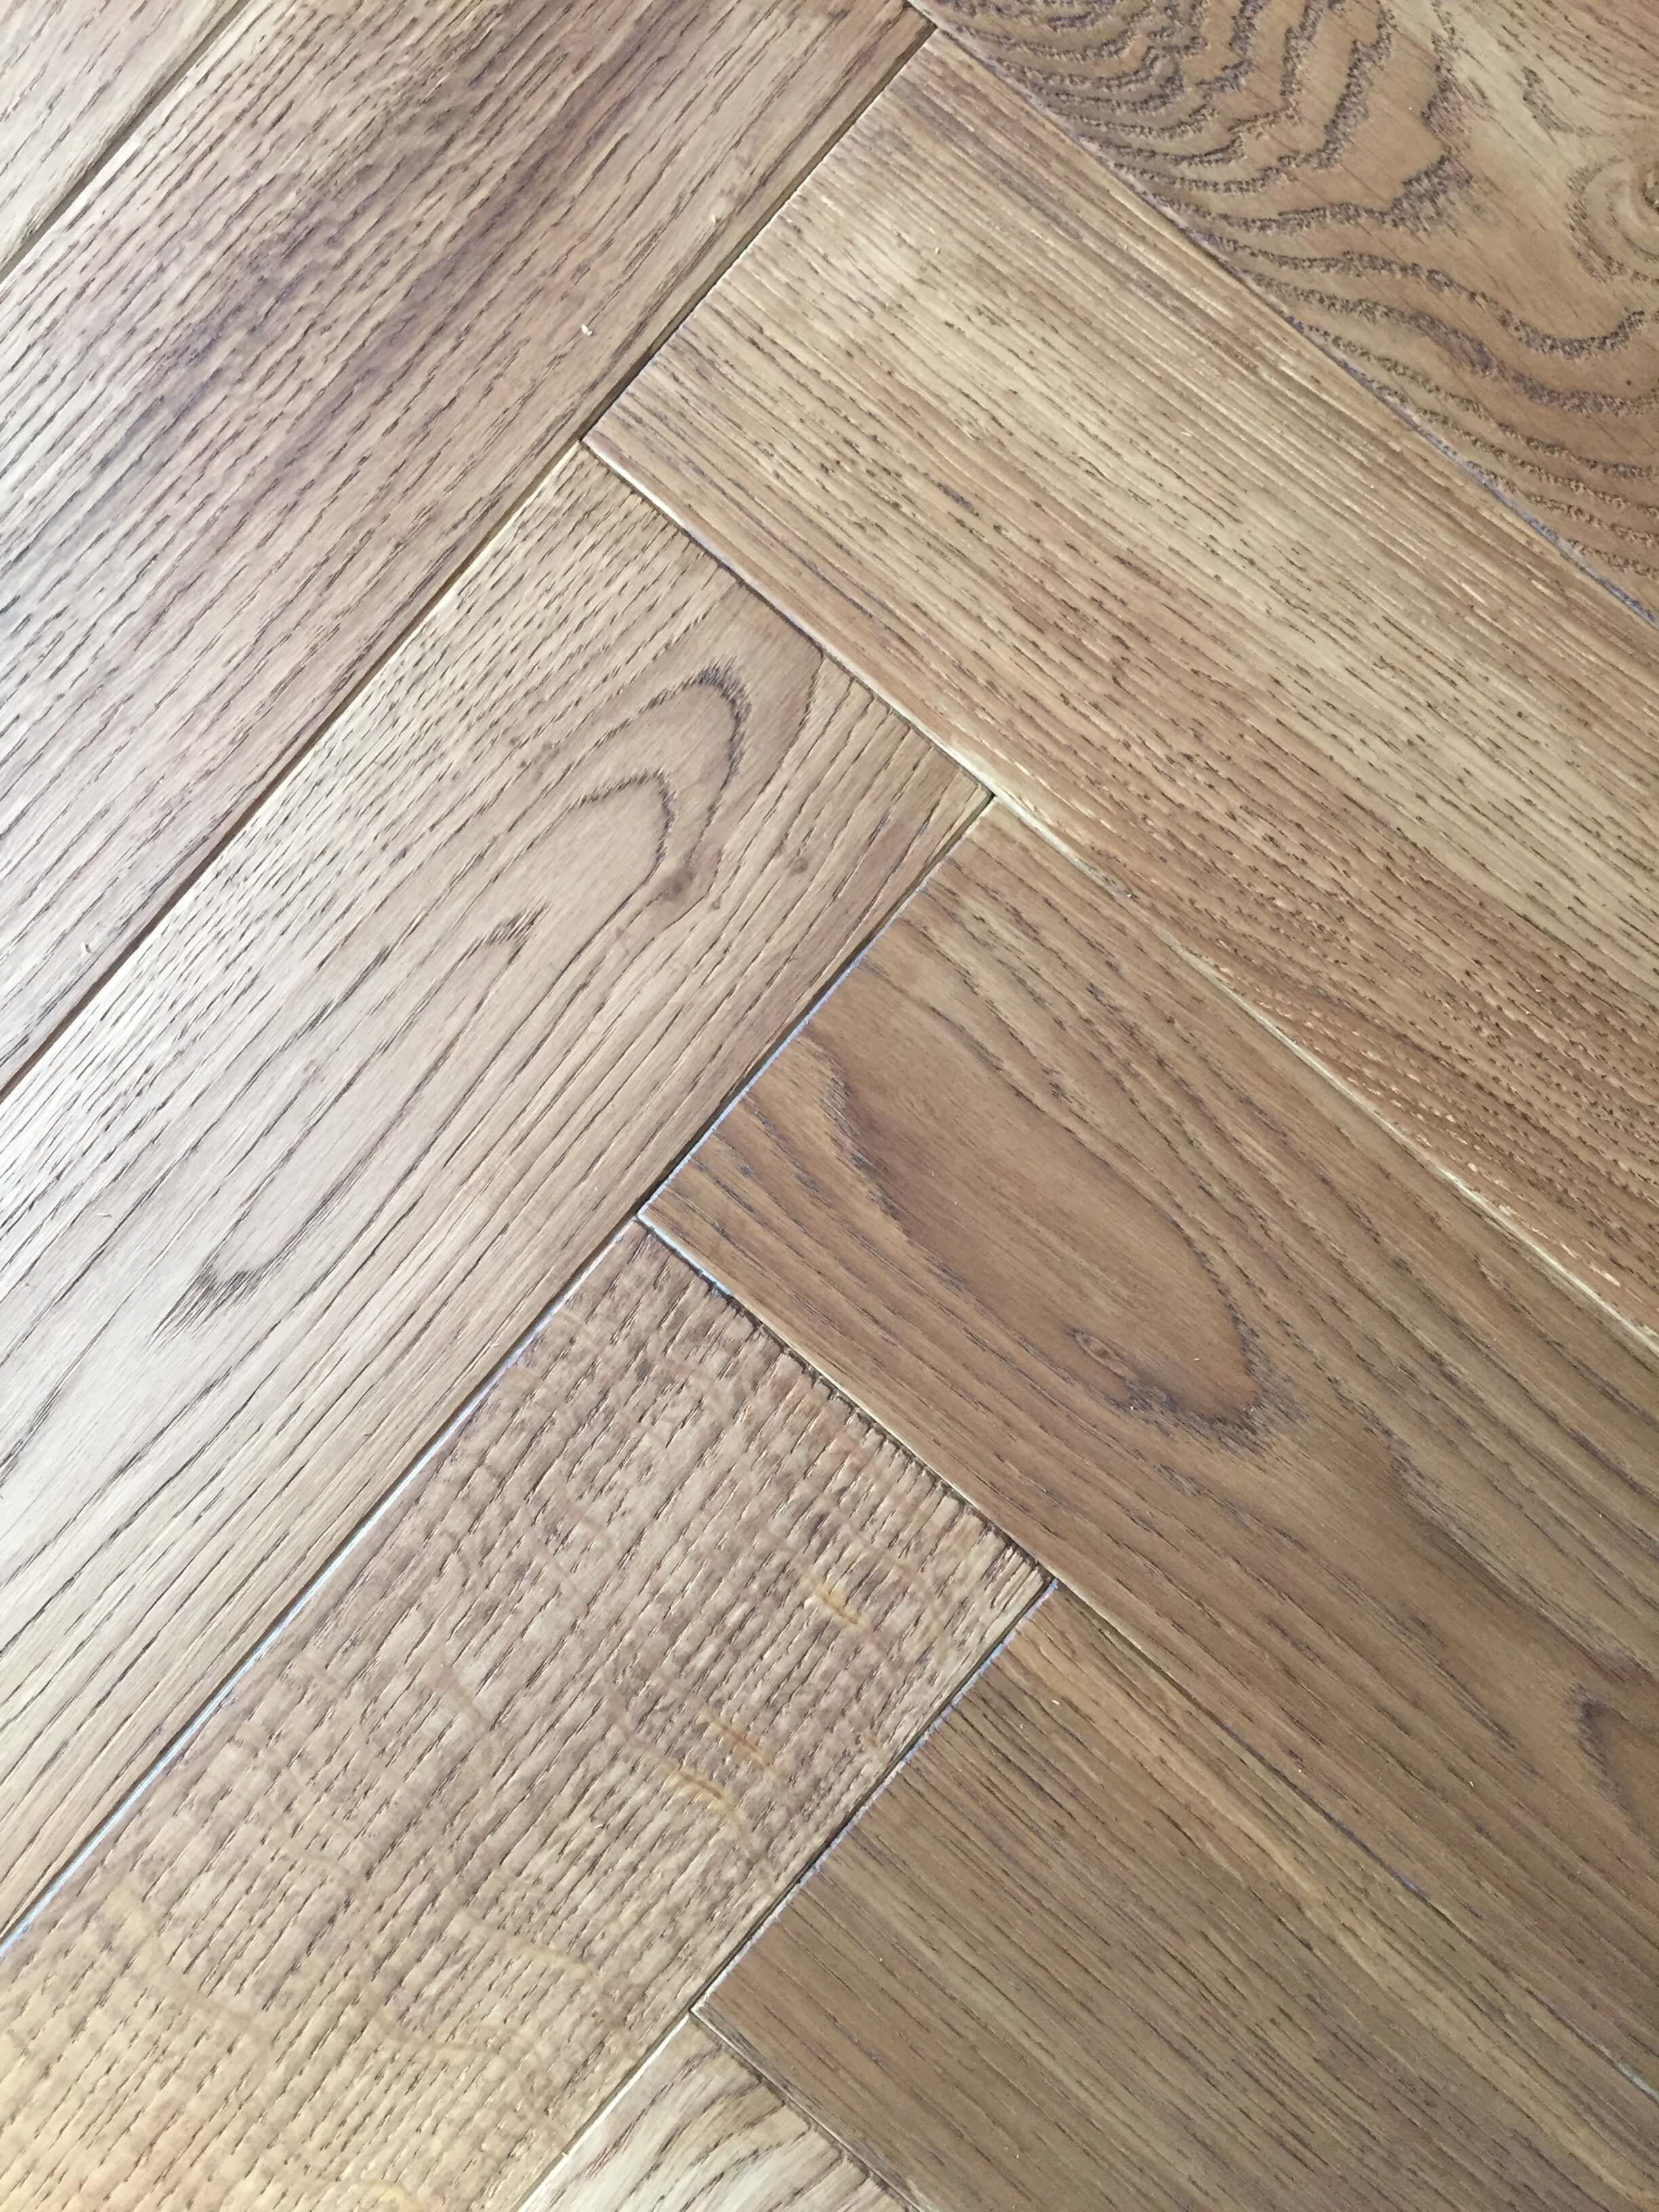 lowes hardwood flooring reviews of vinyl laminate flooring lowes inspirational cheap wood look tile pertaining to vinyl laminate flooring lowes inspirational cheap wood look tile of vinyl laminate flooring lowes inspirational cheap